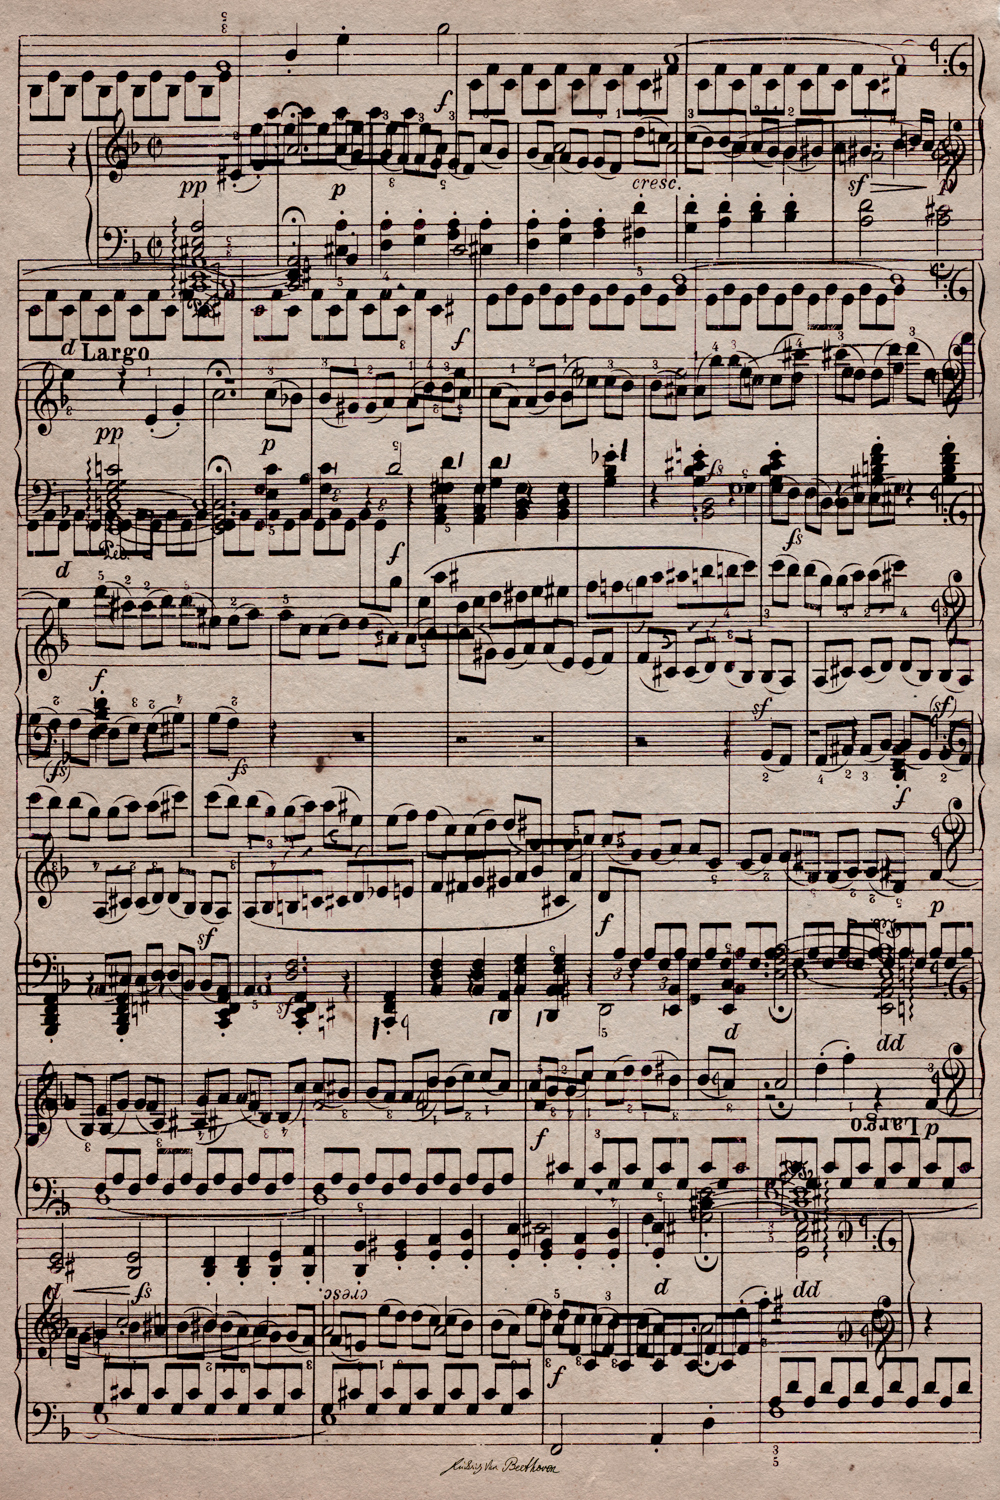 Print of sheet music to Ode to Joy